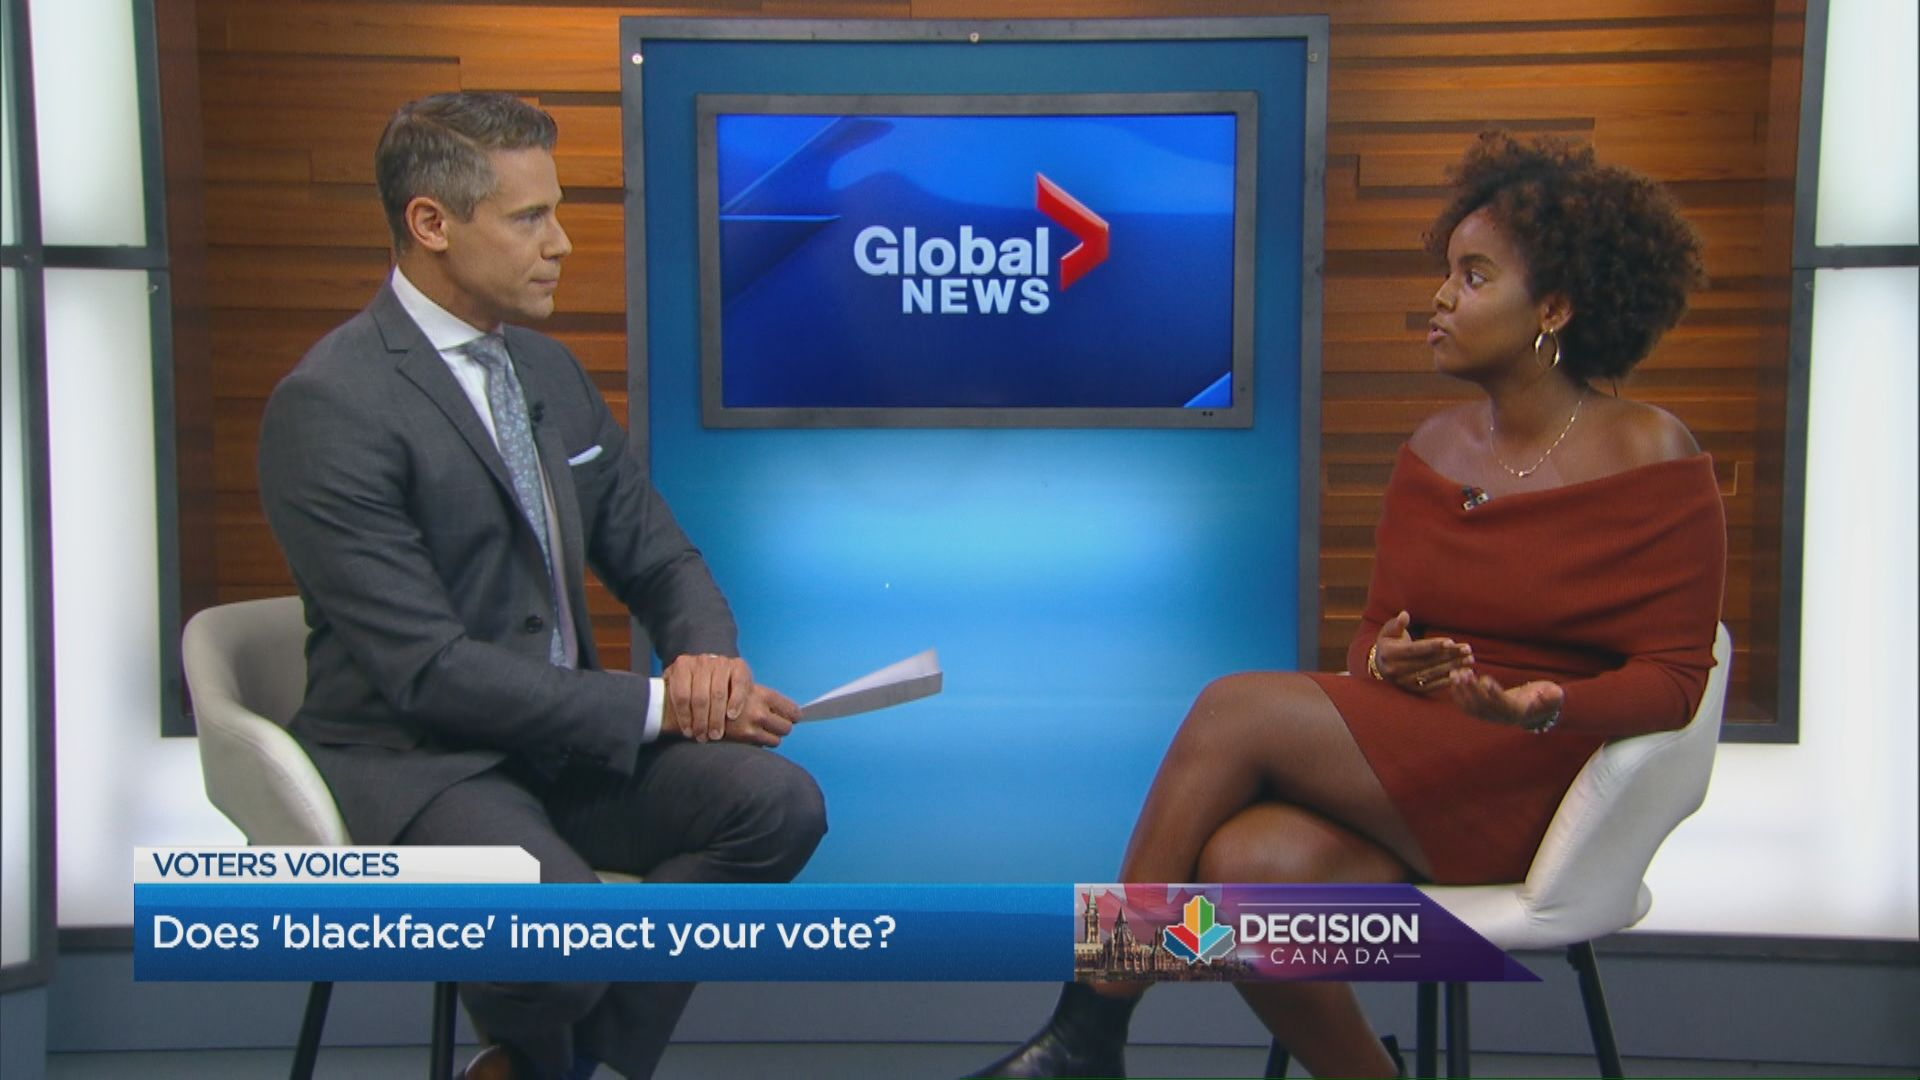 Does 'blackface' impact your vote?